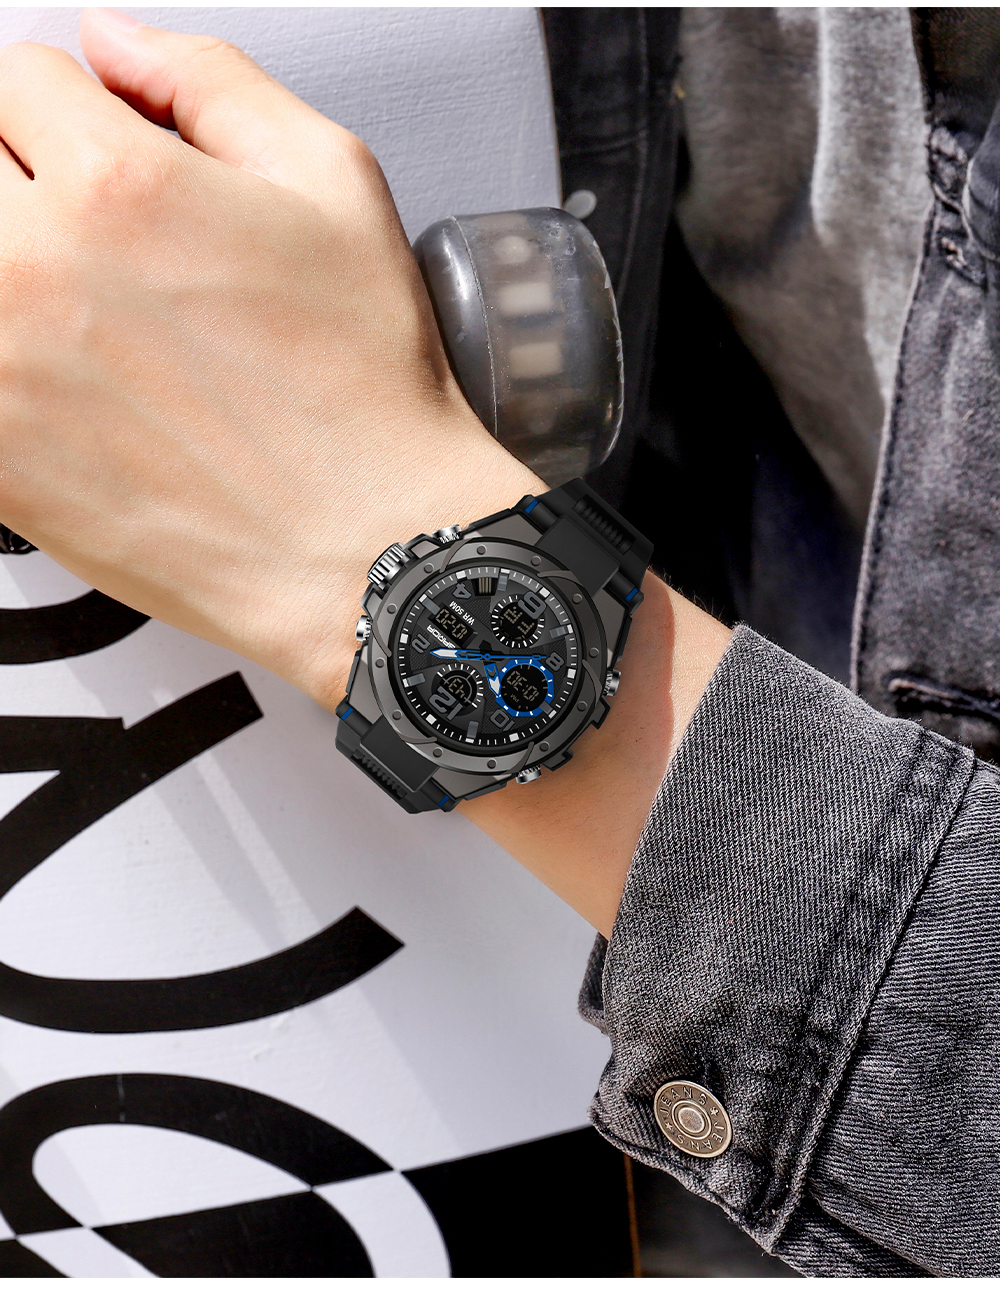 H2014ab9942844dc68feddca88789a1afg SANAD Top Brand Luxury Men's Military Sports Watches 5ATM Waterproof